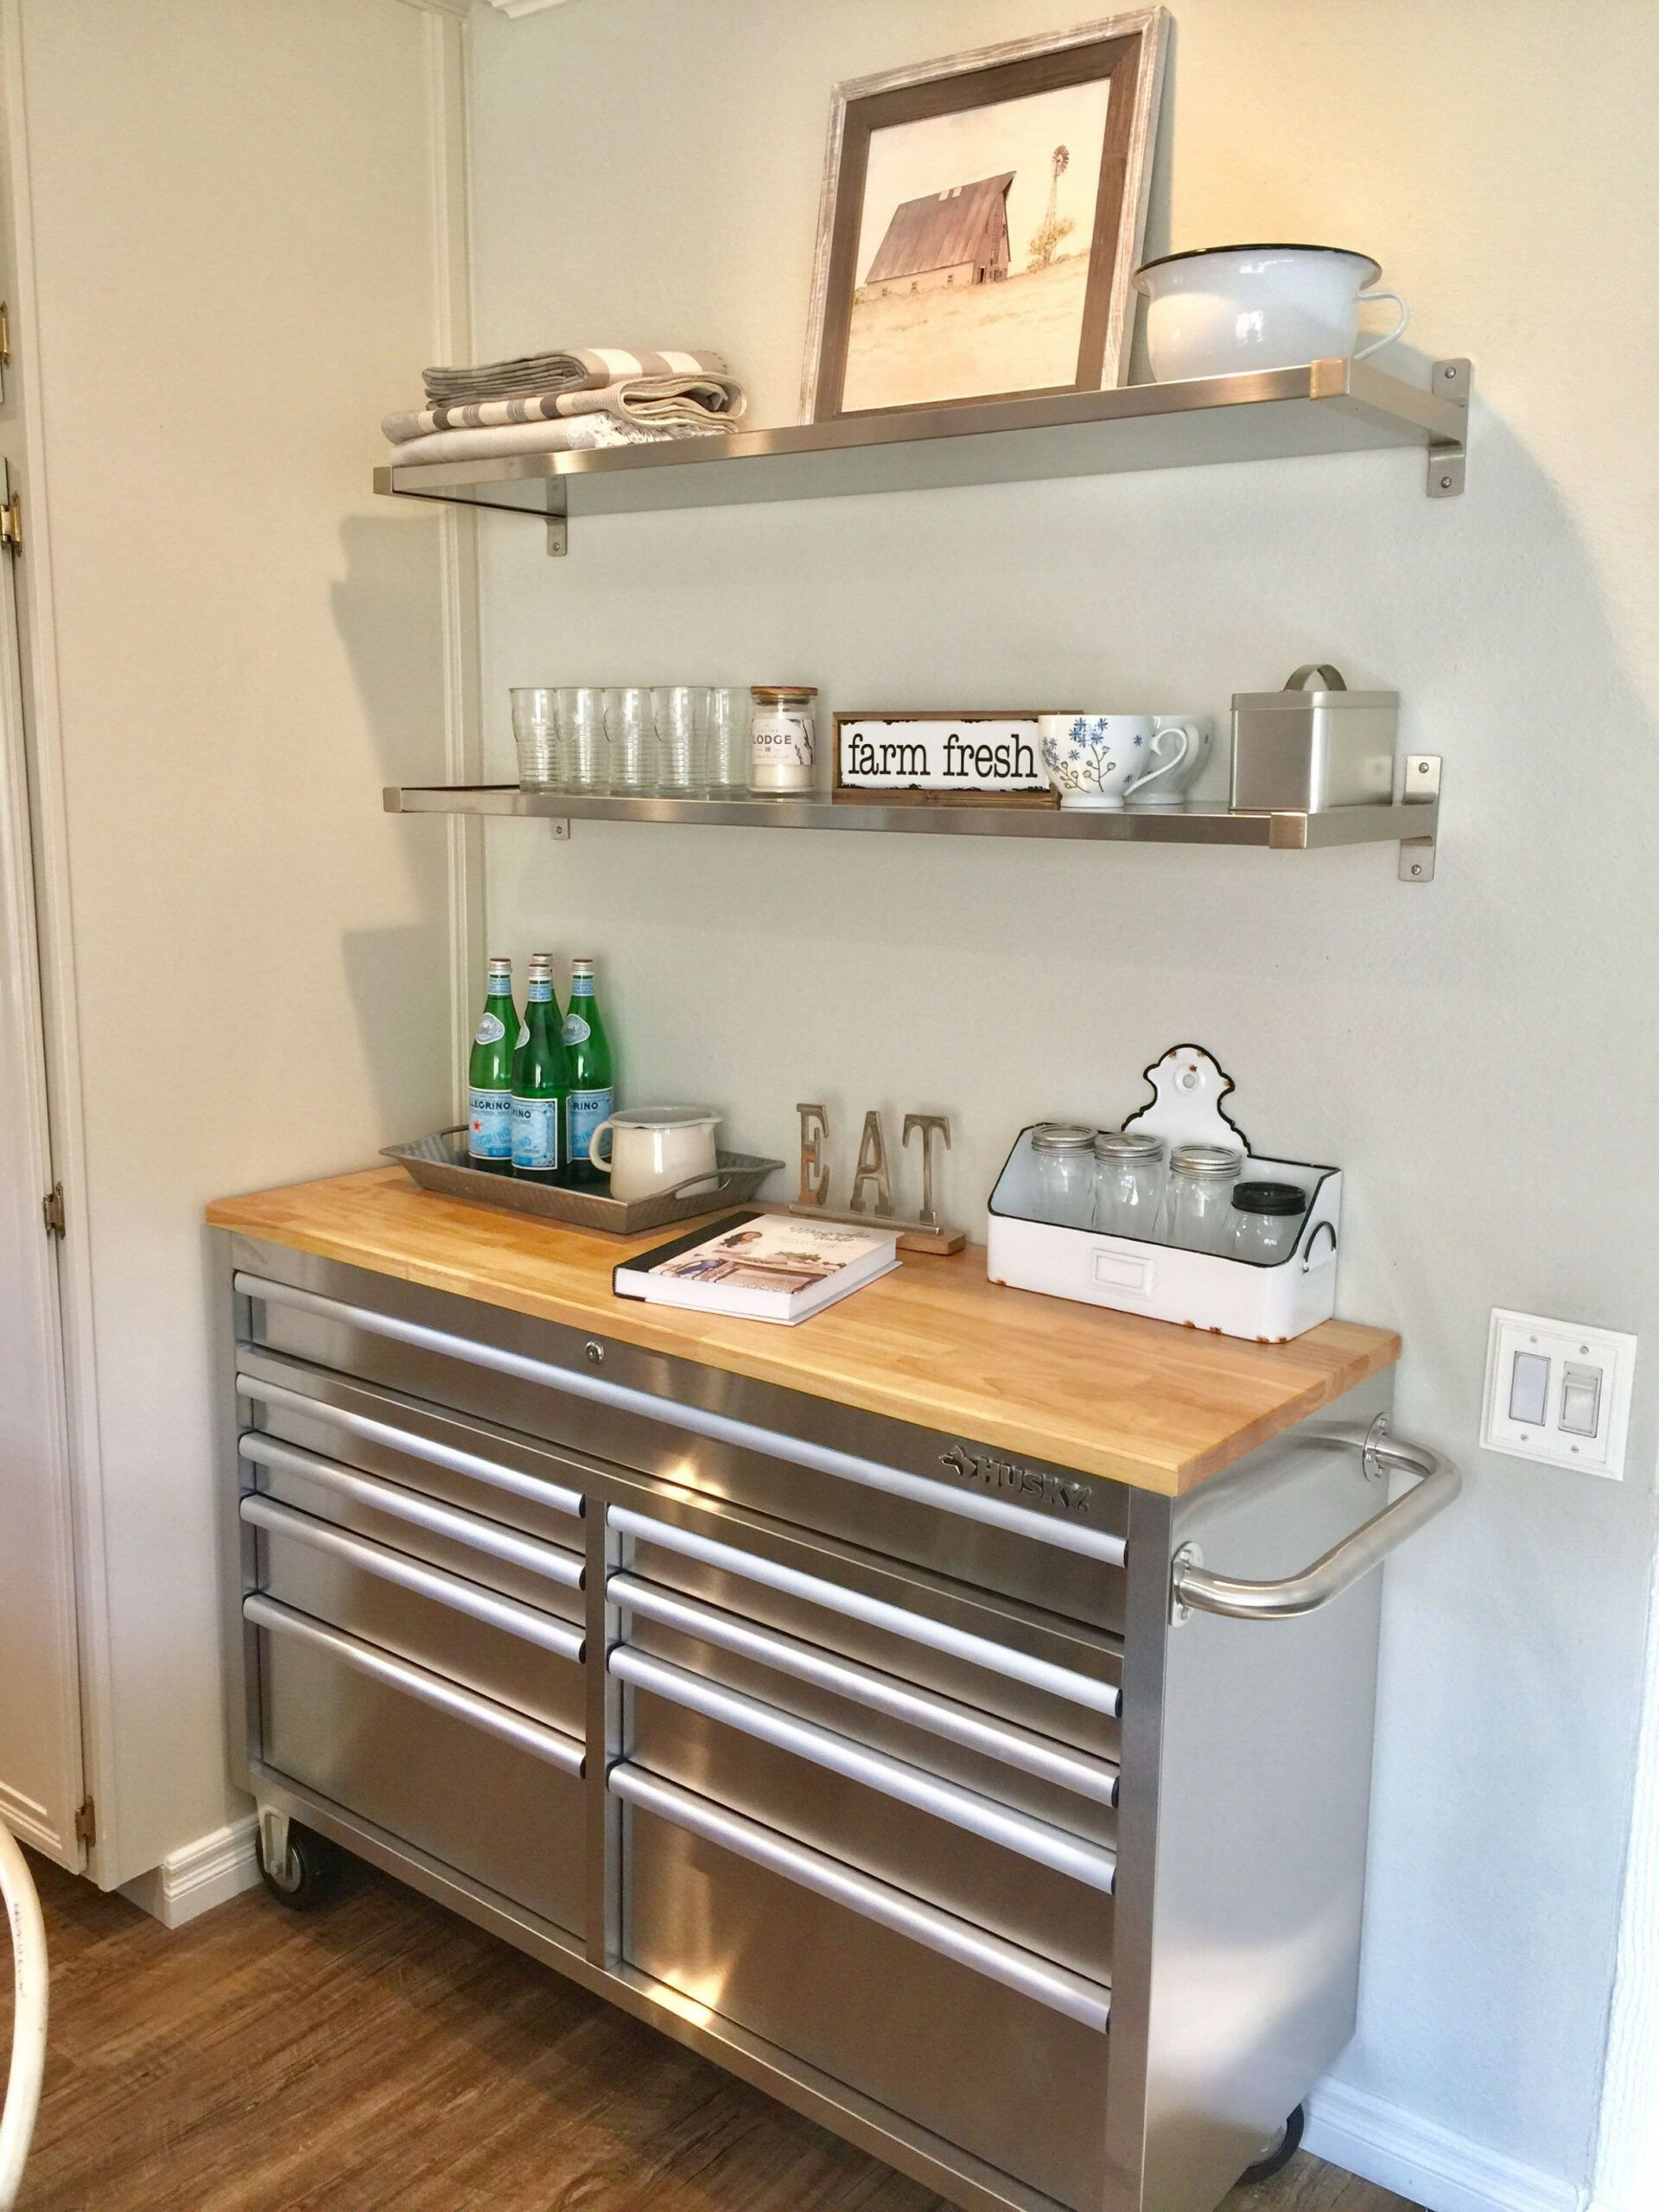 8 Kitchen Cabinets That Look Like Tool Boxes In 2020 Modern Kitchen Storage Kitchen Storage Hacks Outdoor Kitchen Design